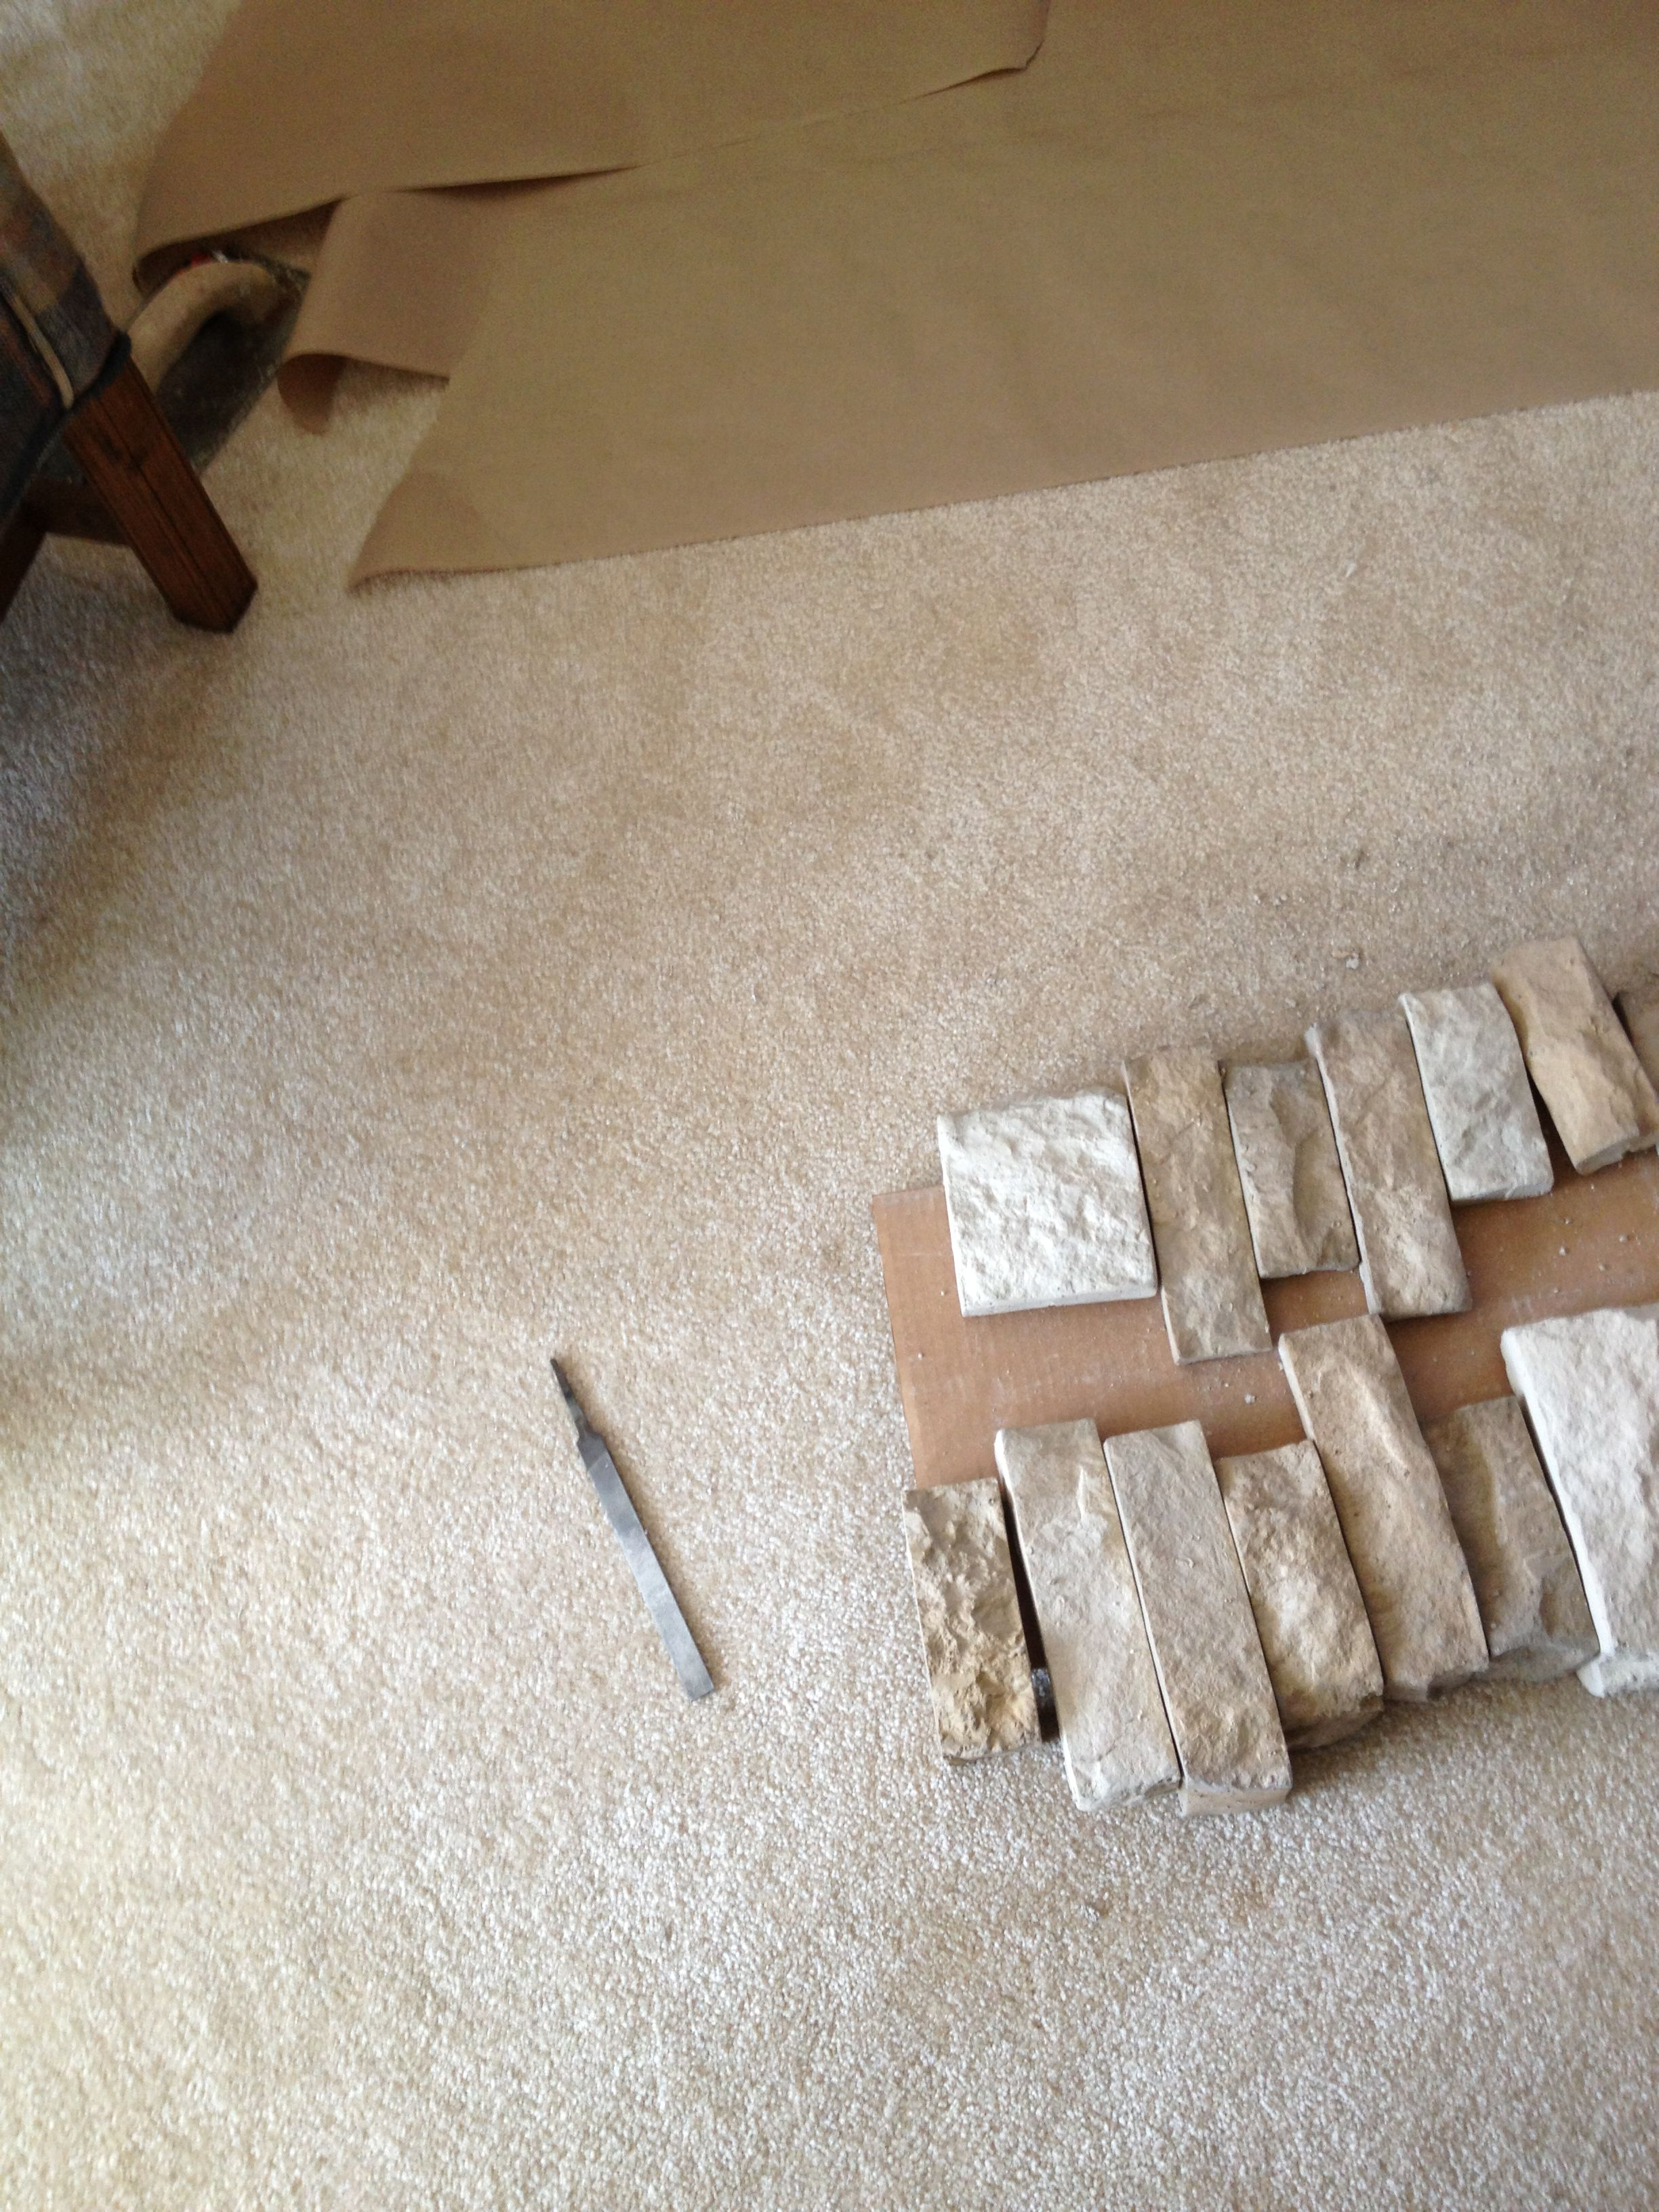 airstone pattern laid out for the interior corners of the